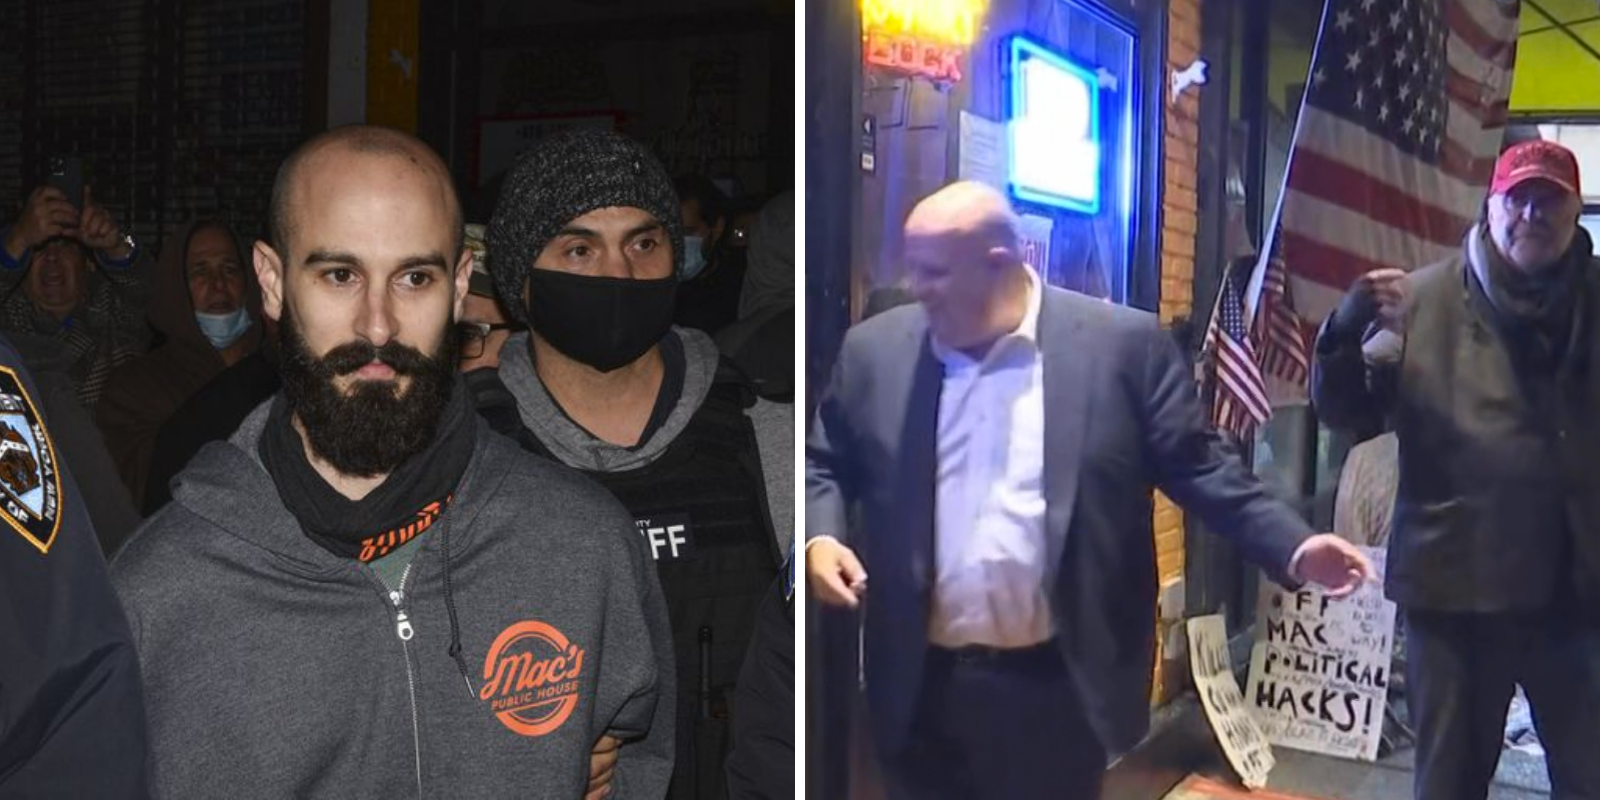 Staten Island bar owner who protested lockdowns arrested again after refusing to close business